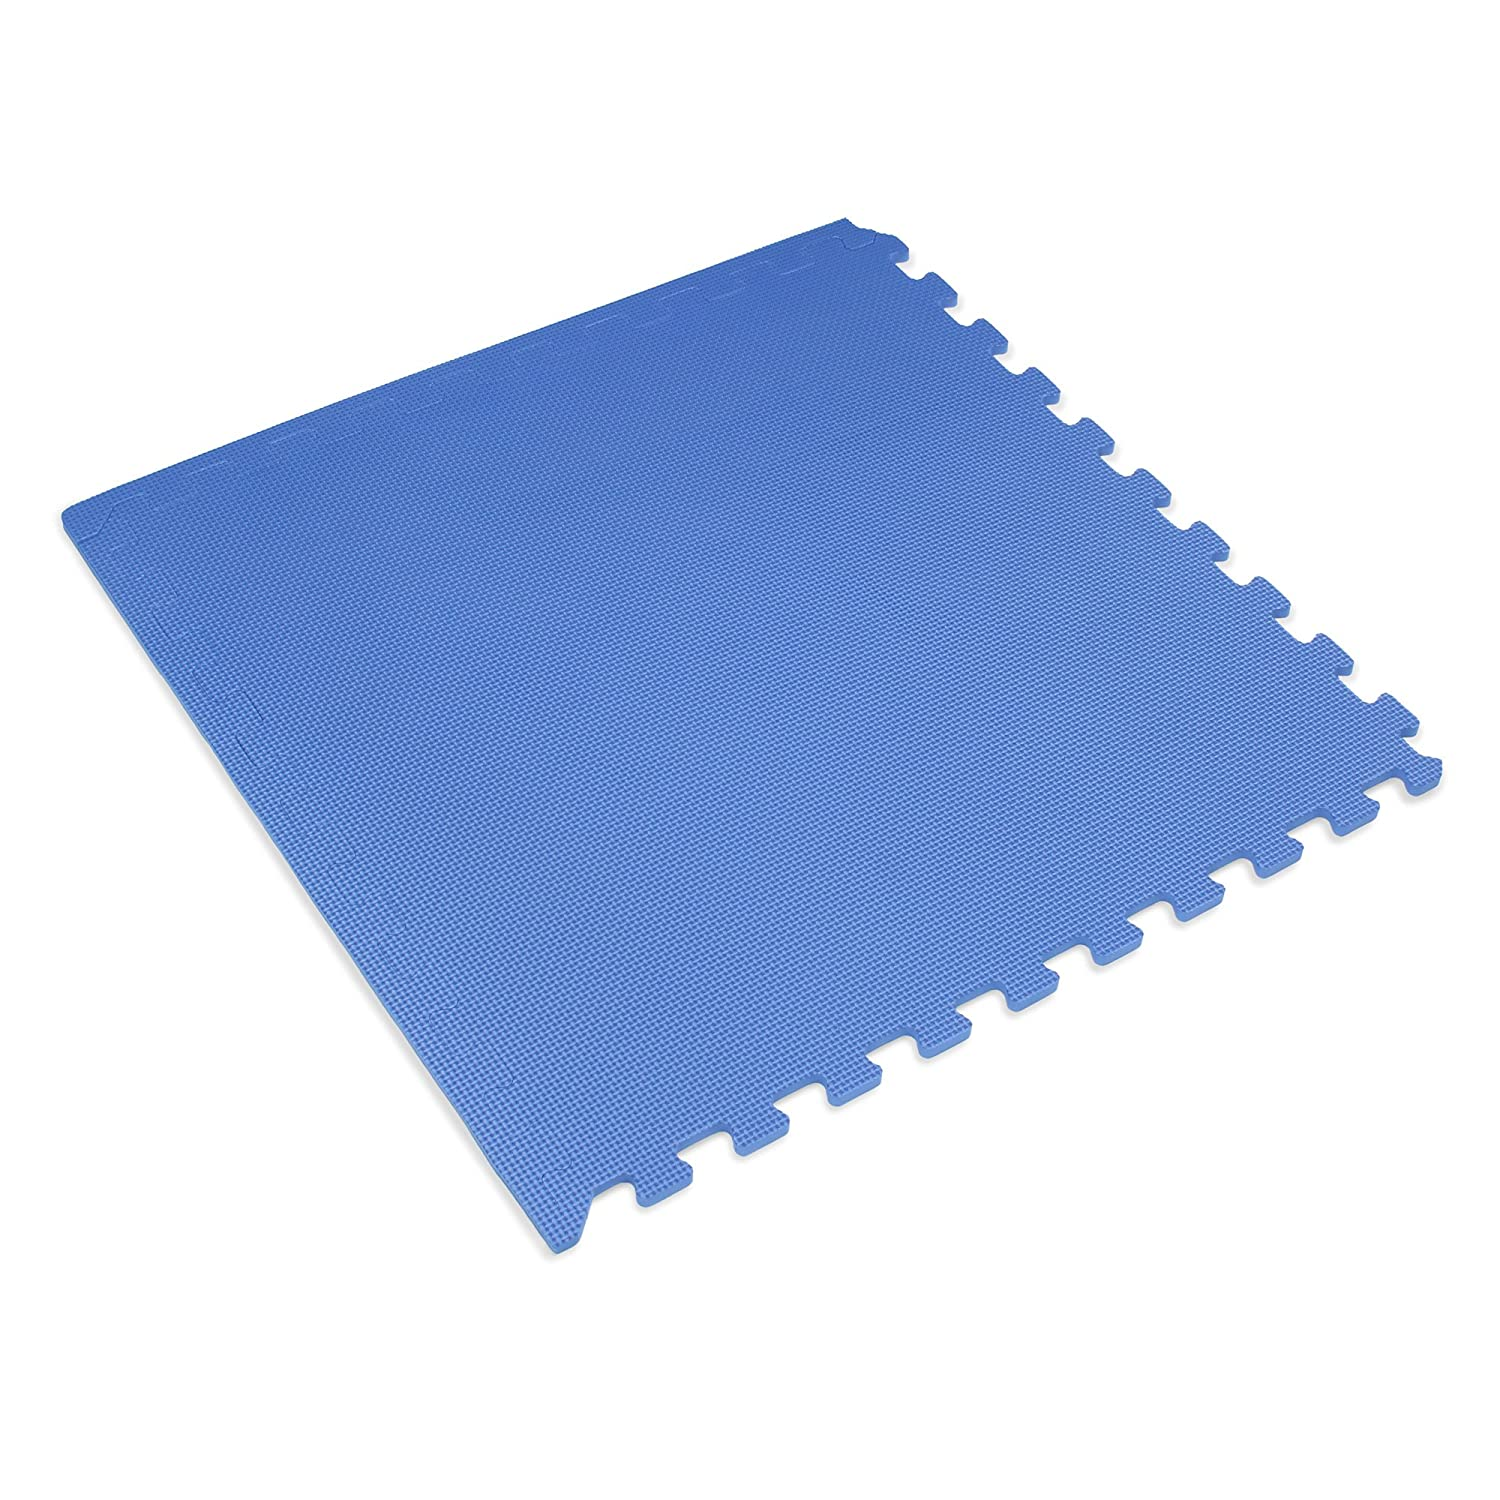 Amazon.com : We Sell Mats 100 Square Feet Interlocking Foam Tiles ...